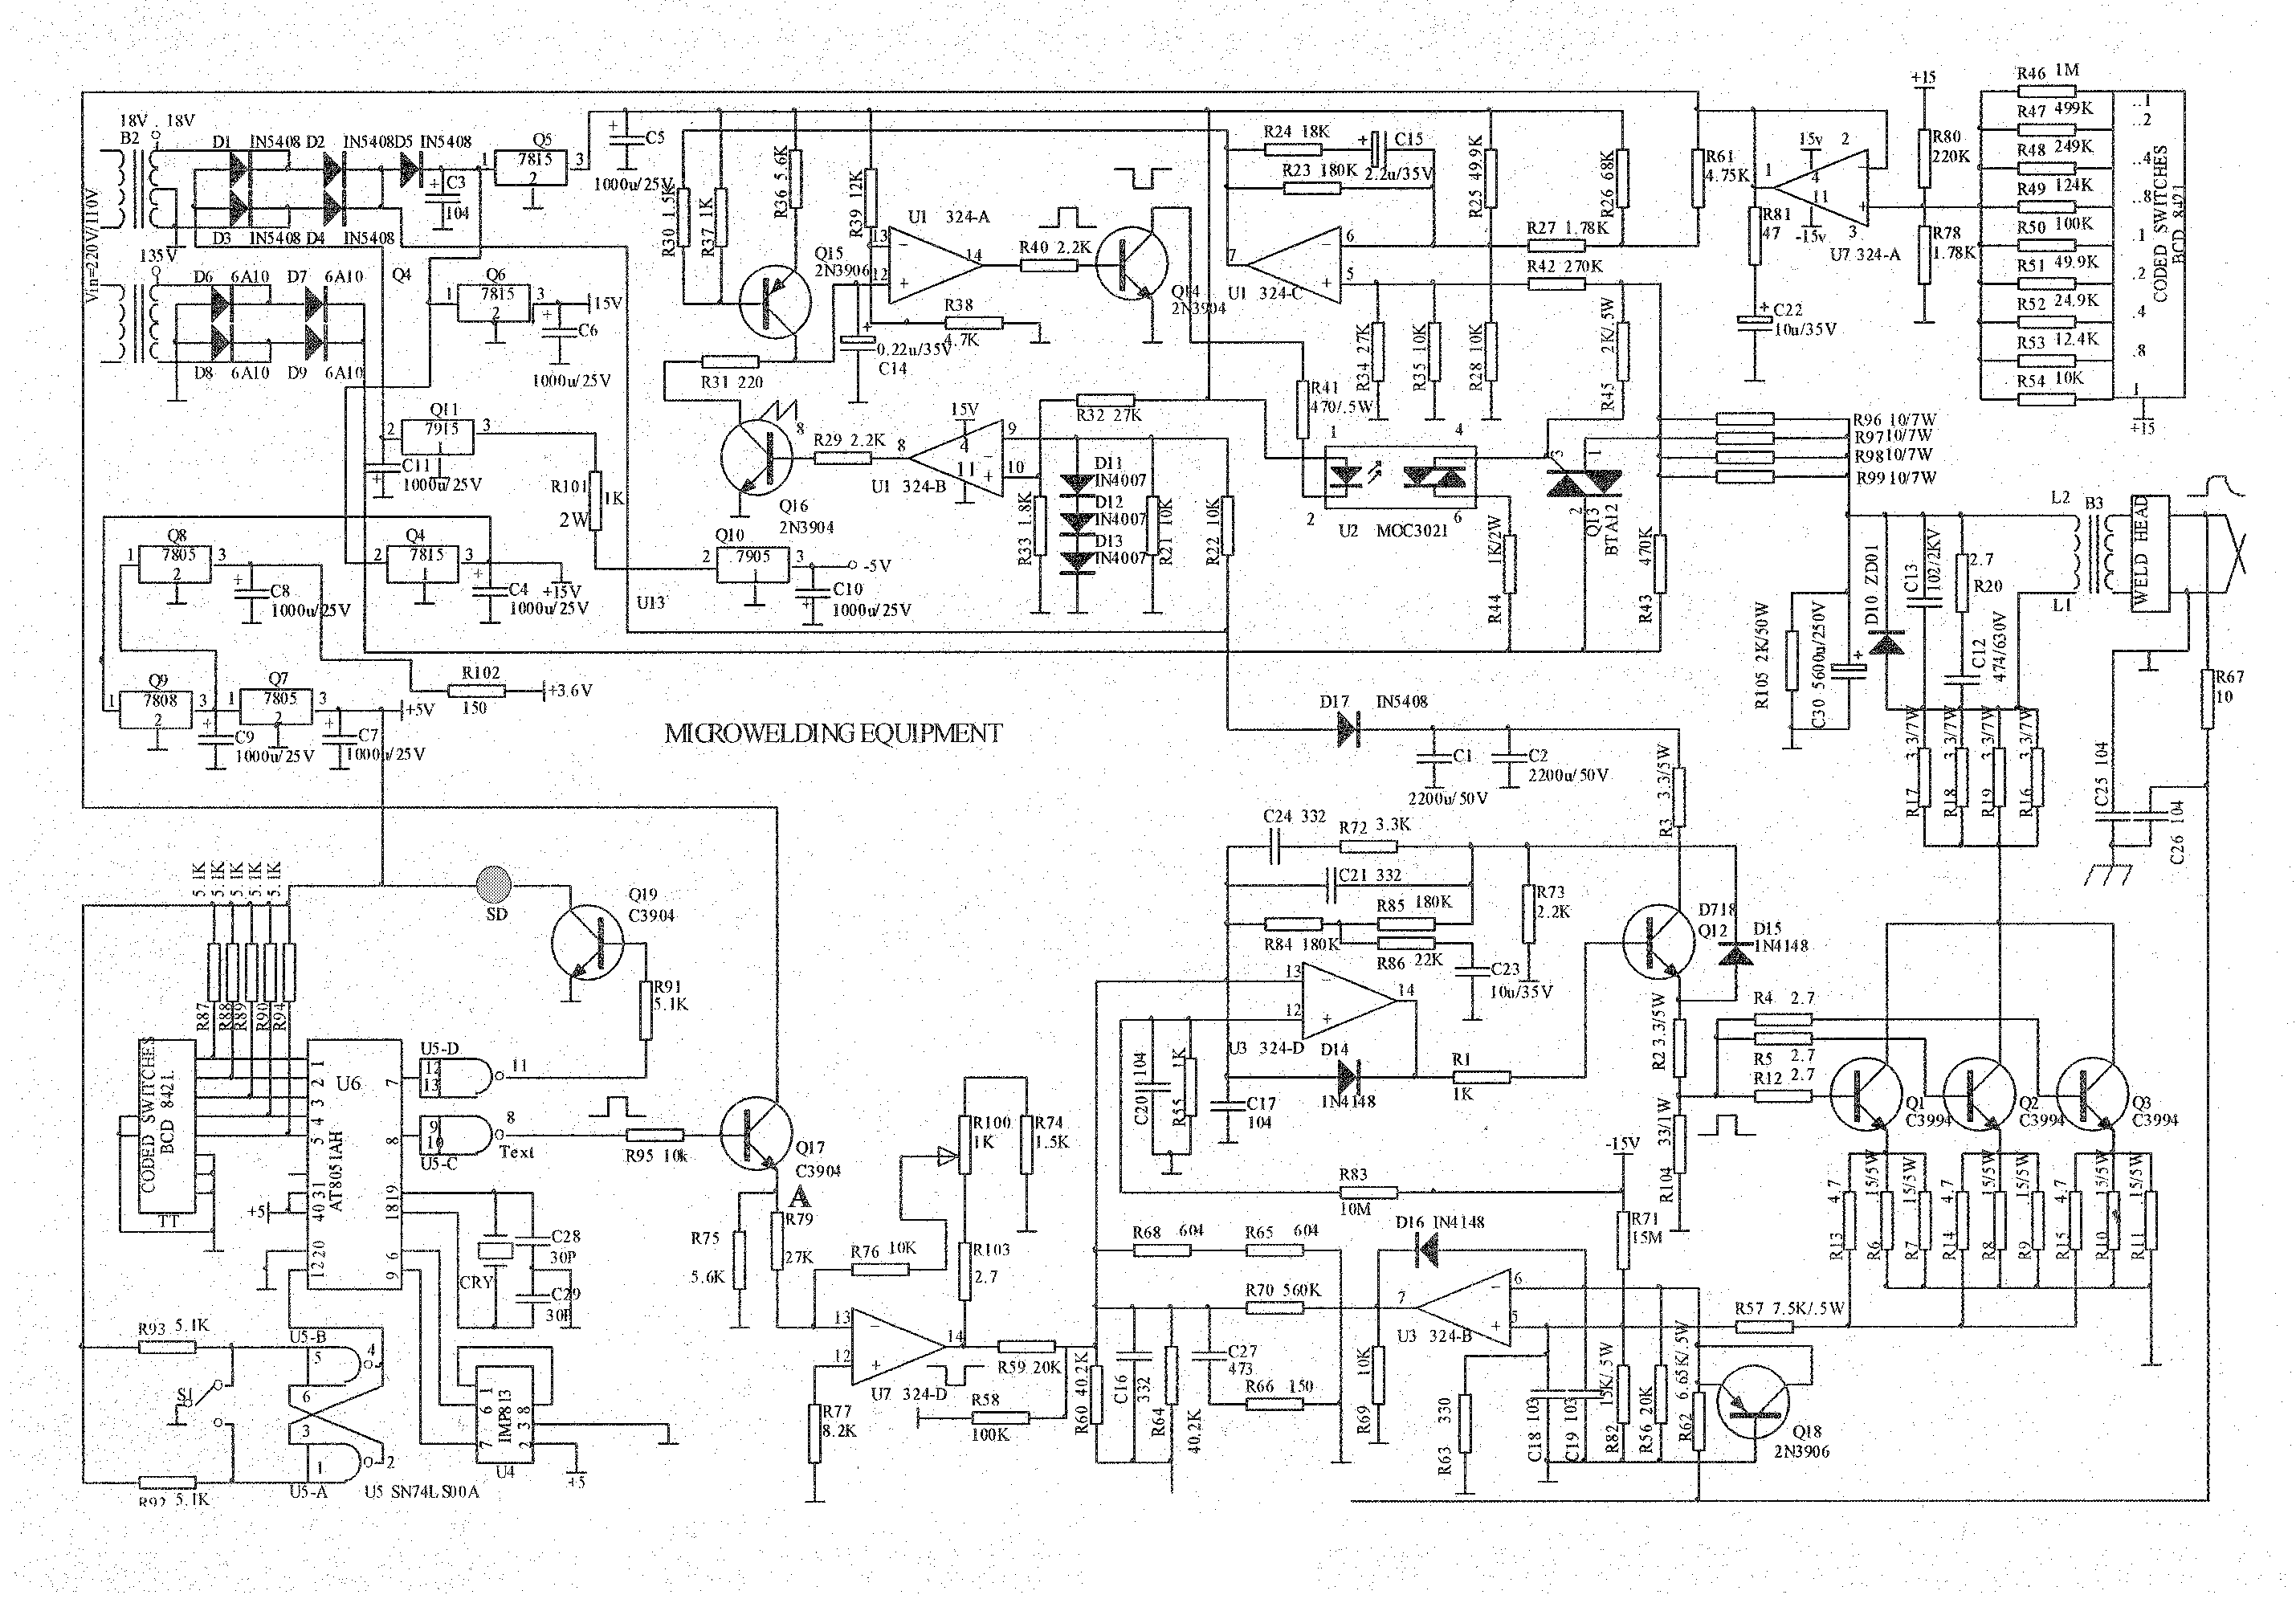 Welding Machine Schematic Diagram 33 Wiring Images Mig Us20110062123a1 20110317 D00000 Patent Us20110062123 Micro Google Patentsuche At Cita